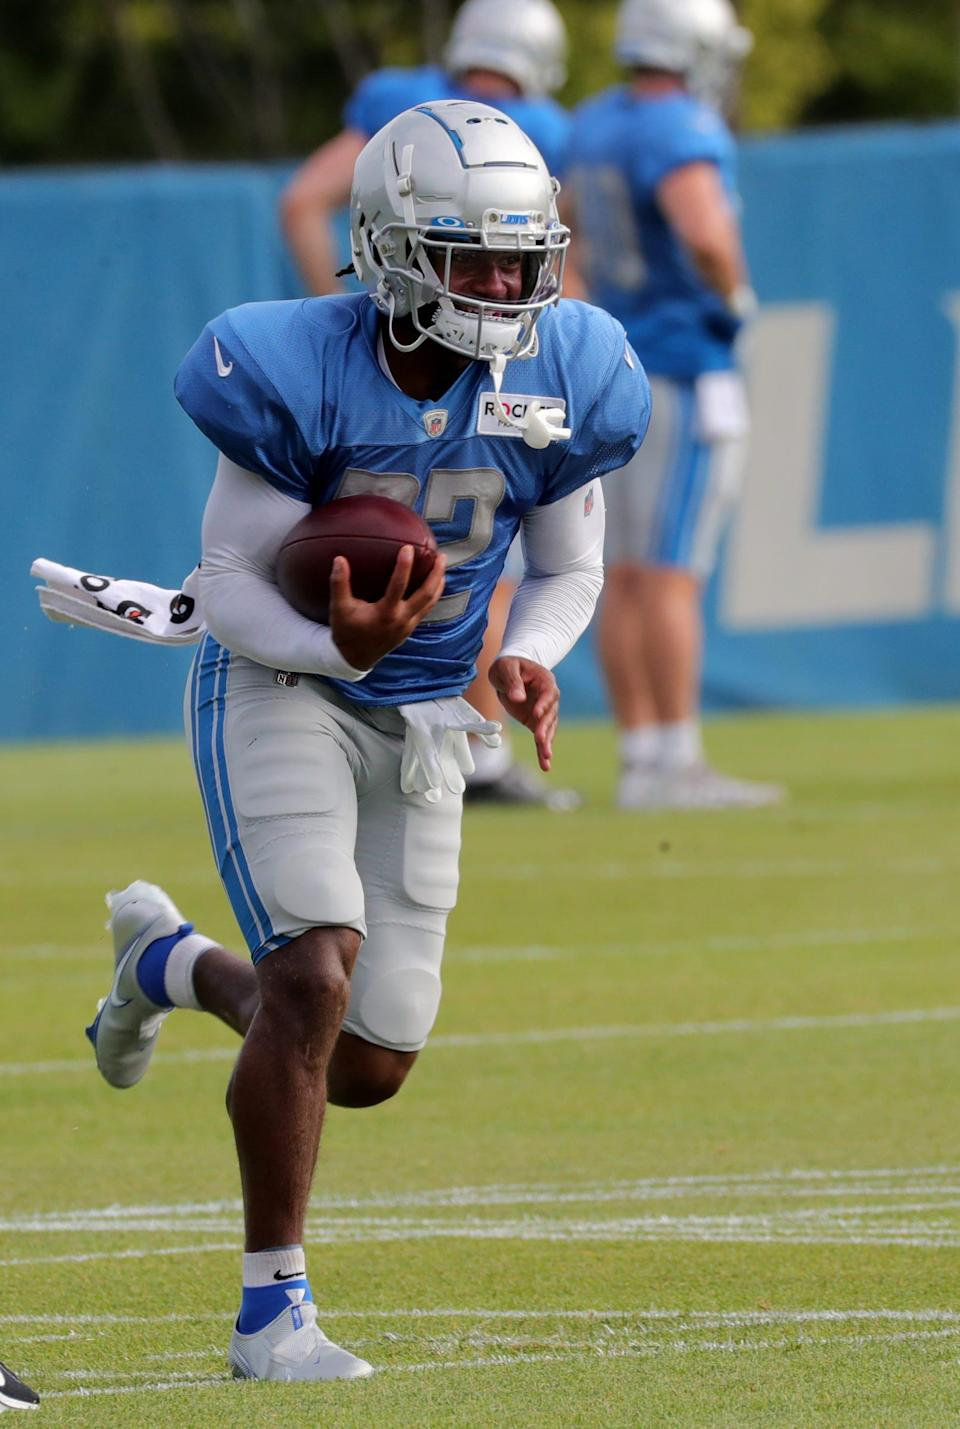 Lions running back D'Andre Swift carries the ball during training camp on Tuesday, August 3, 2021, in Allen Park.